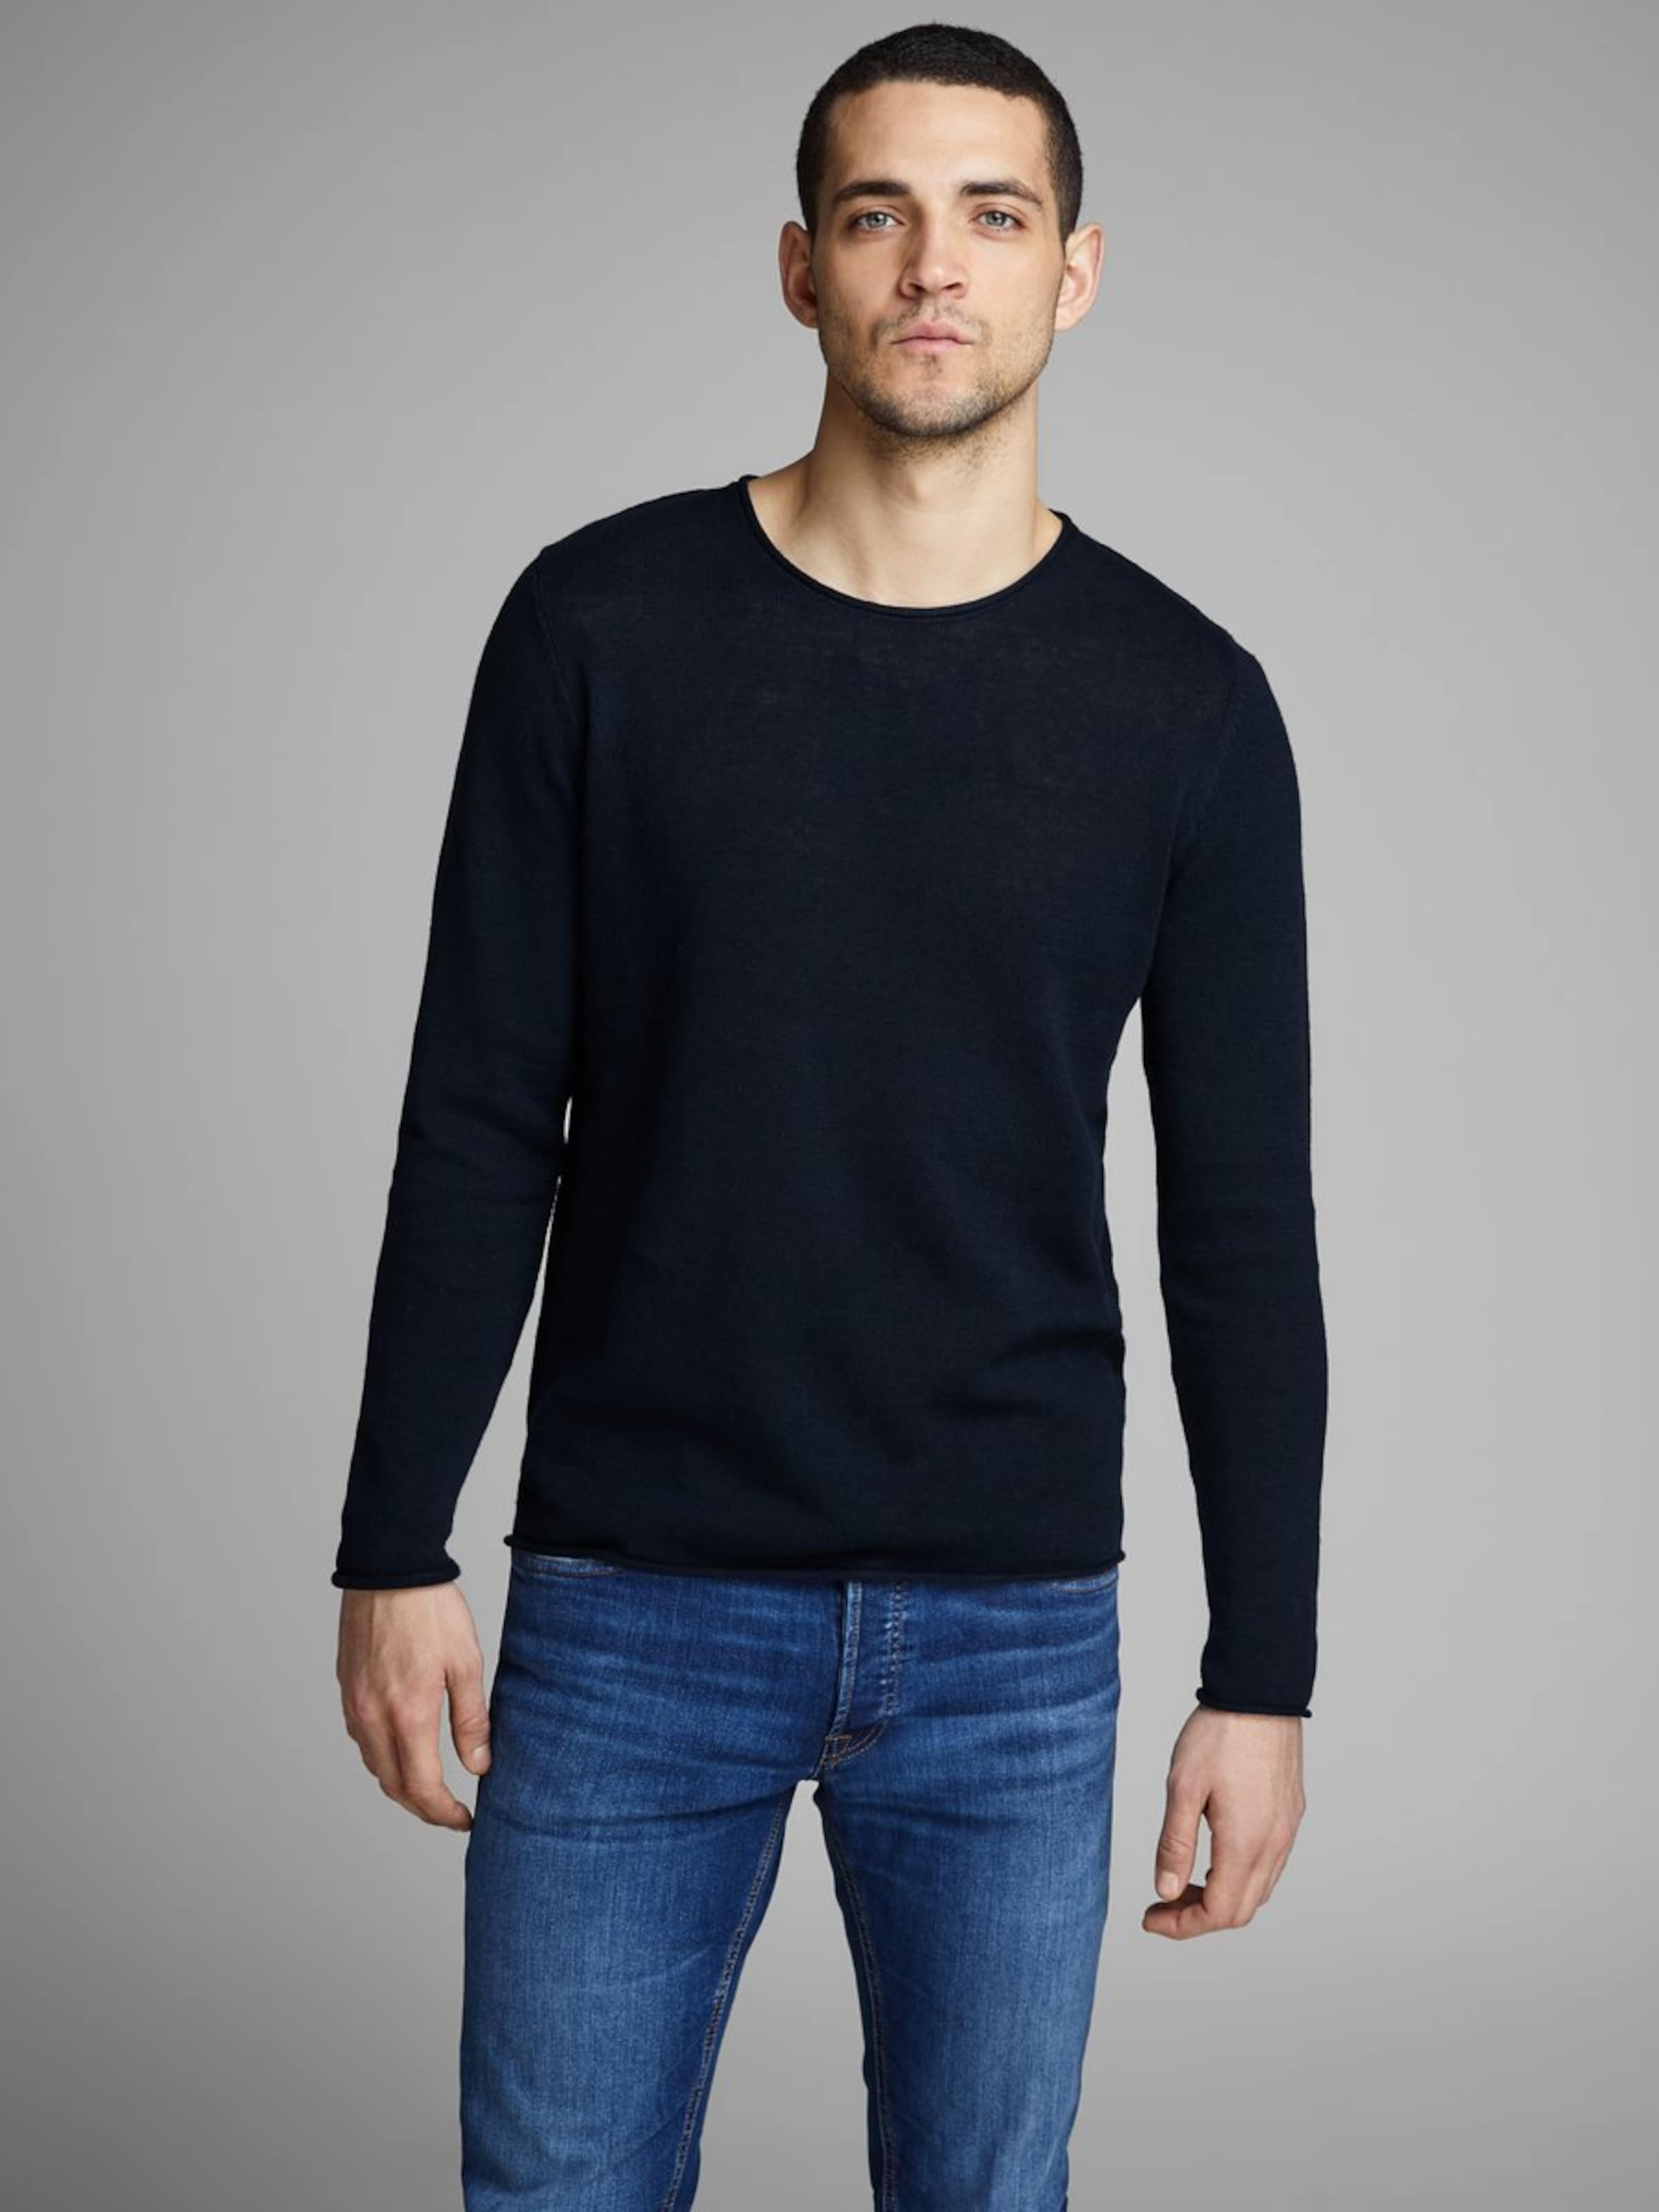 Jackamp; Pullover Pullover In Jackamp; Nachtblau In Jones Jones Nachtblau Jackamp; Jones 8wOXZ0PNkn